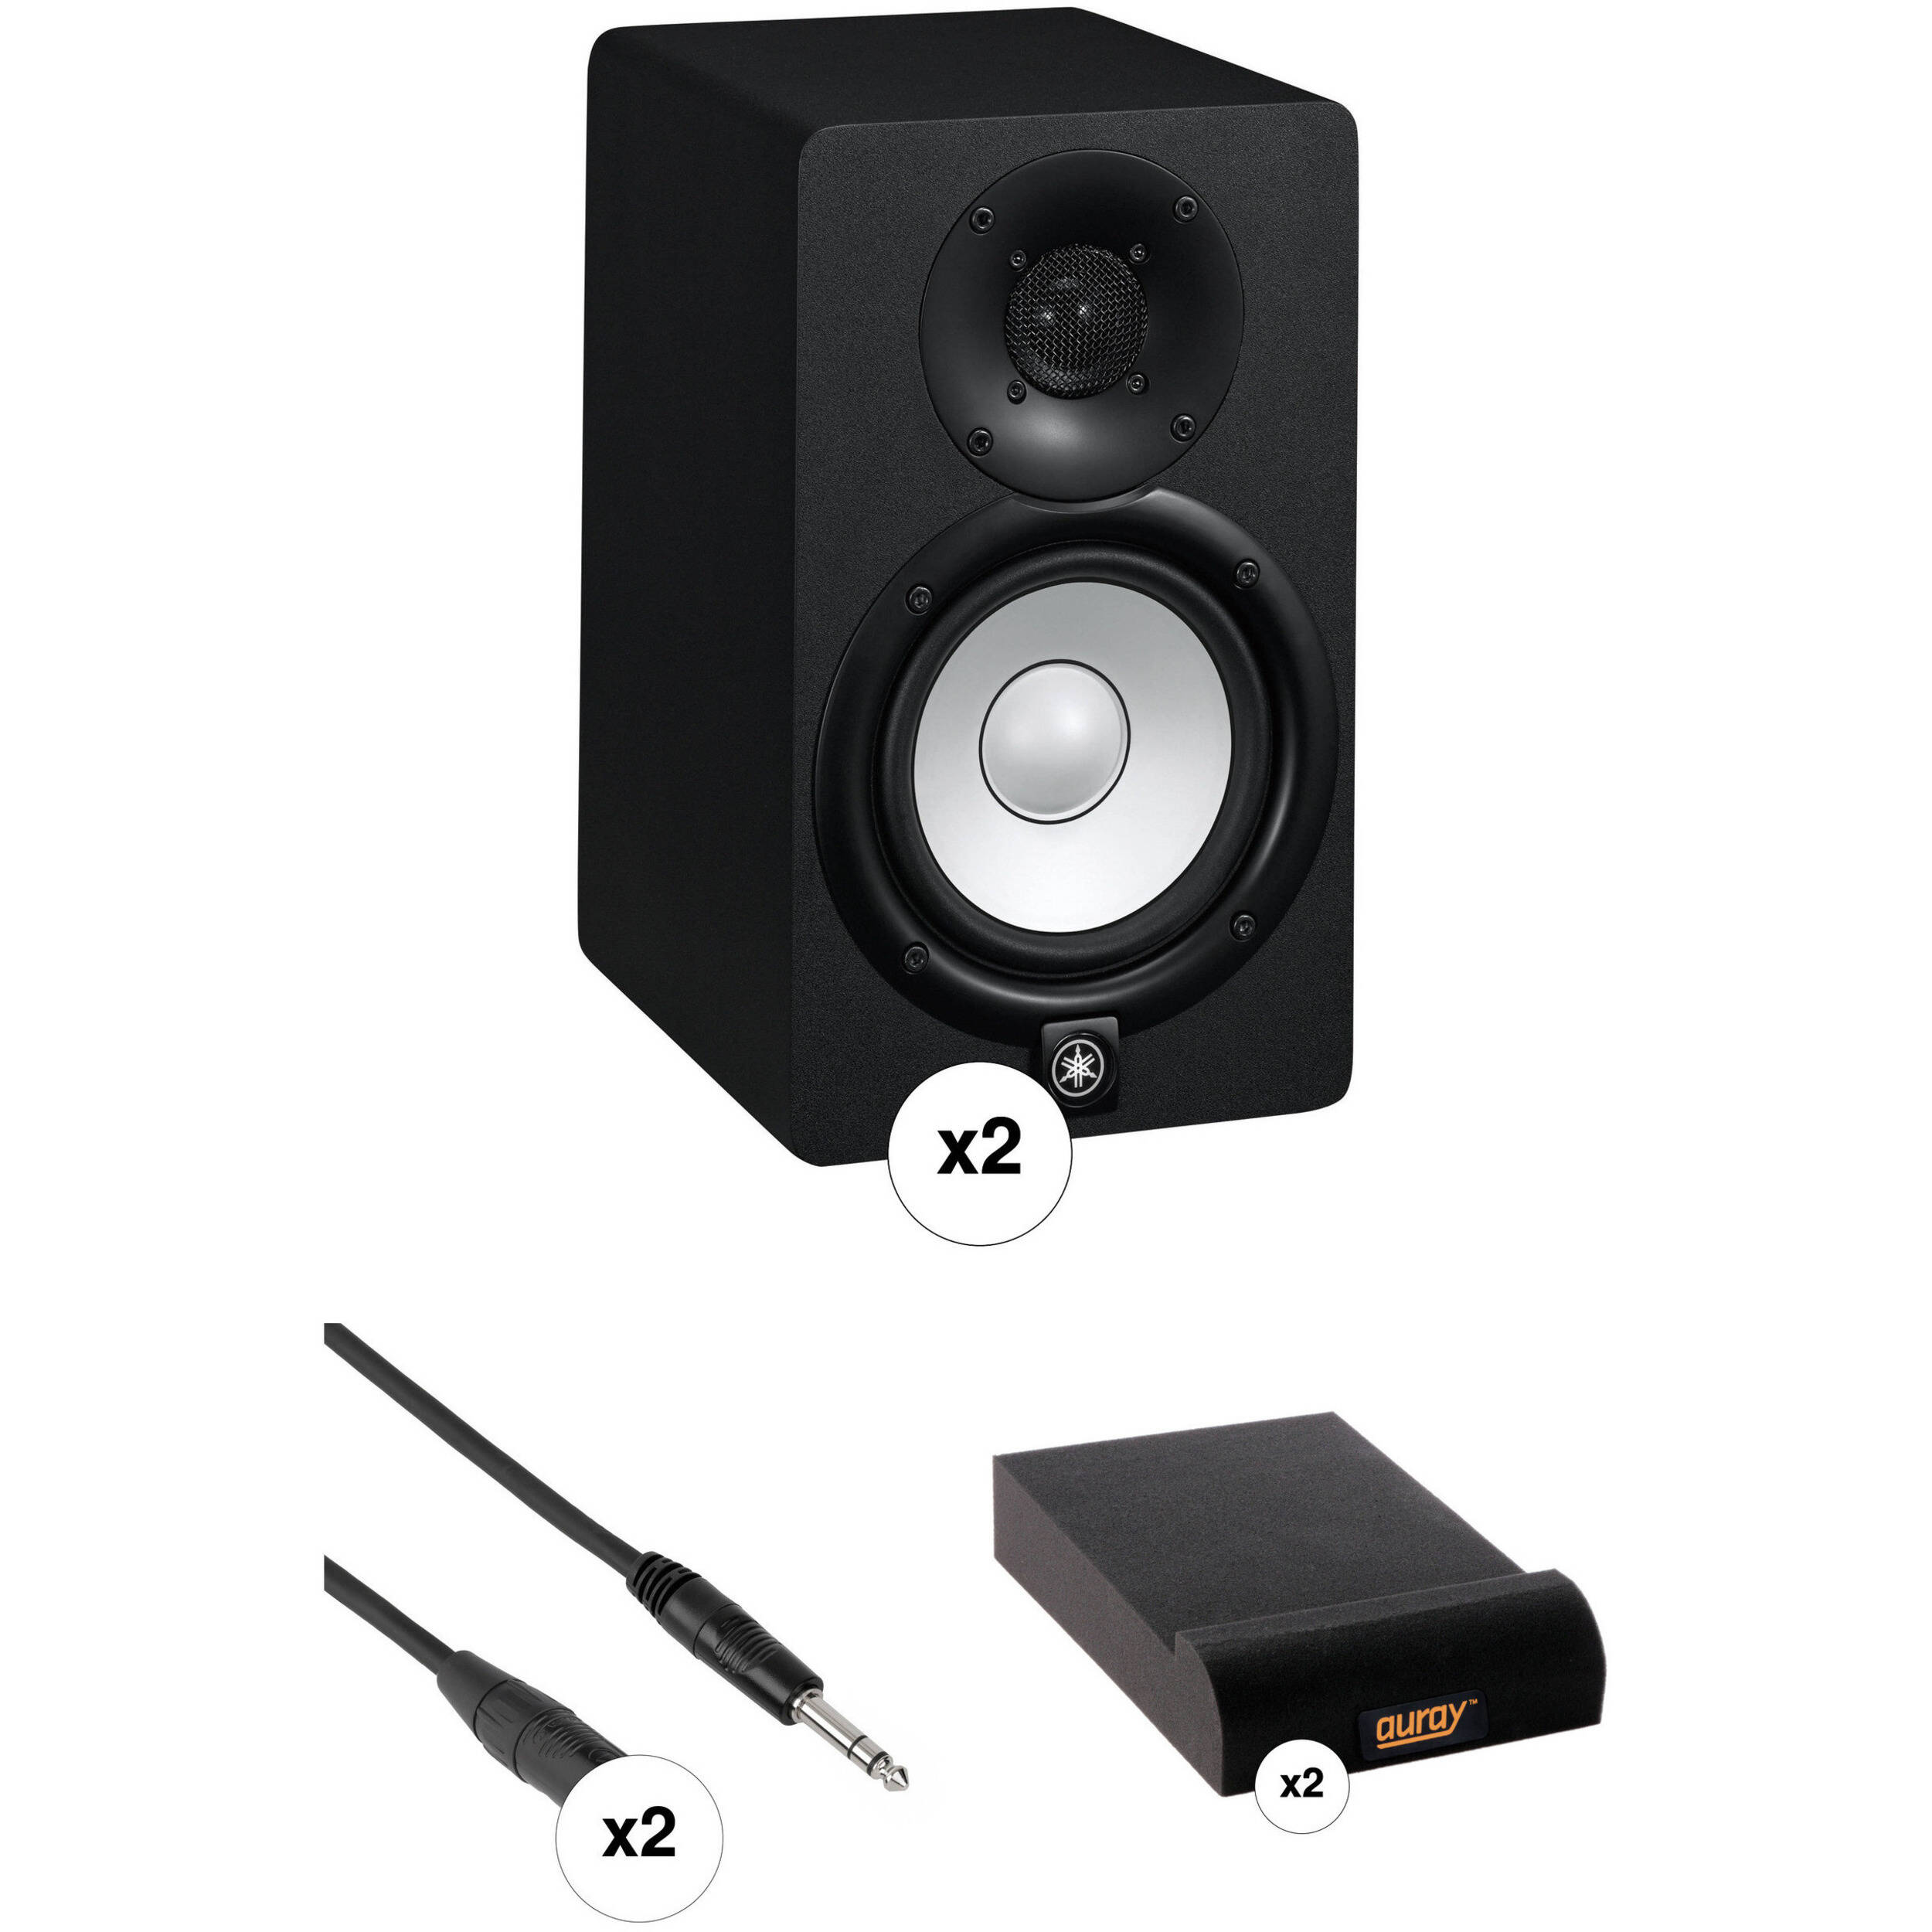 yamaha hs5 powered studio monitors with monitor controller and. Black Bedroom Furniture Sets. Home Design Ideas